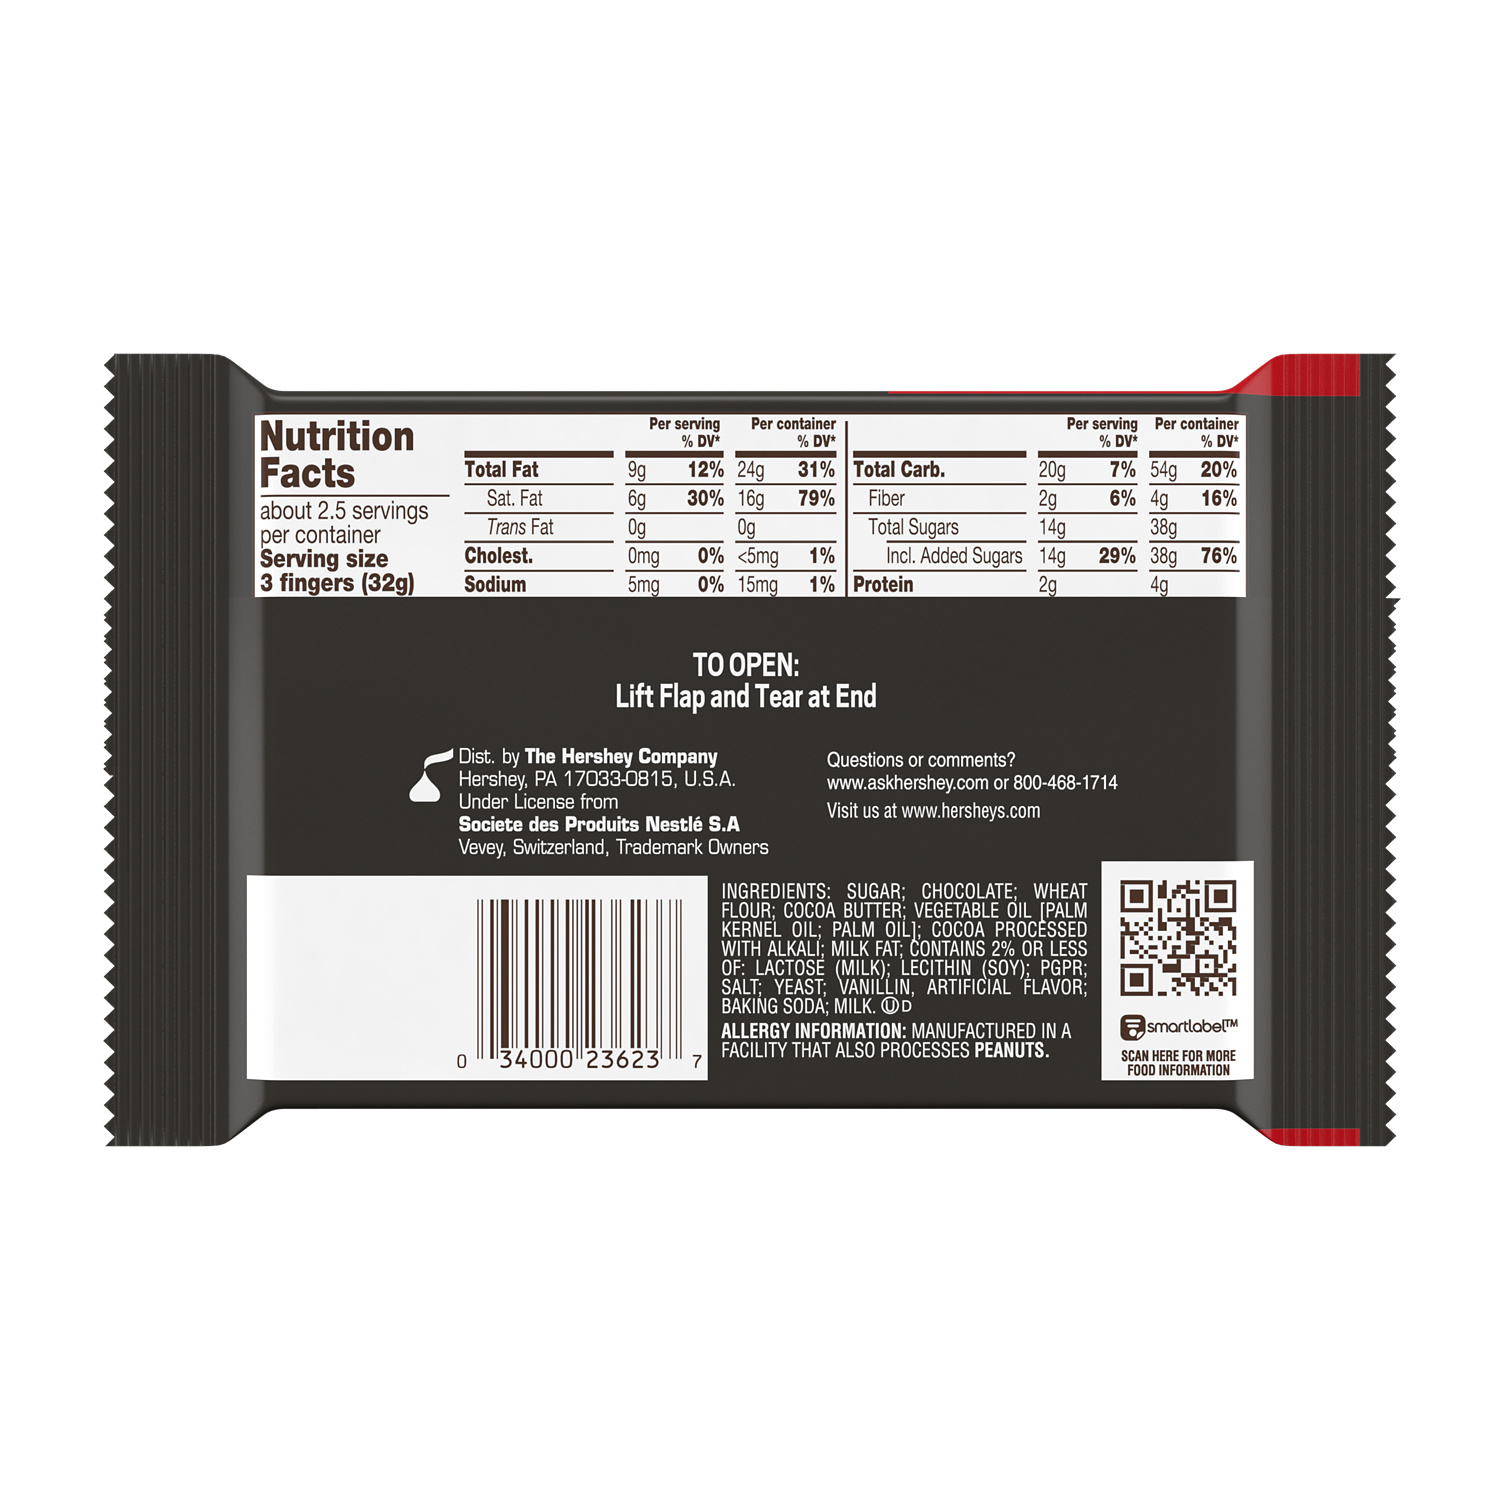 KIT KAT® Dark Chocolate King Size Candy Bar, 3 oz - Back of Package